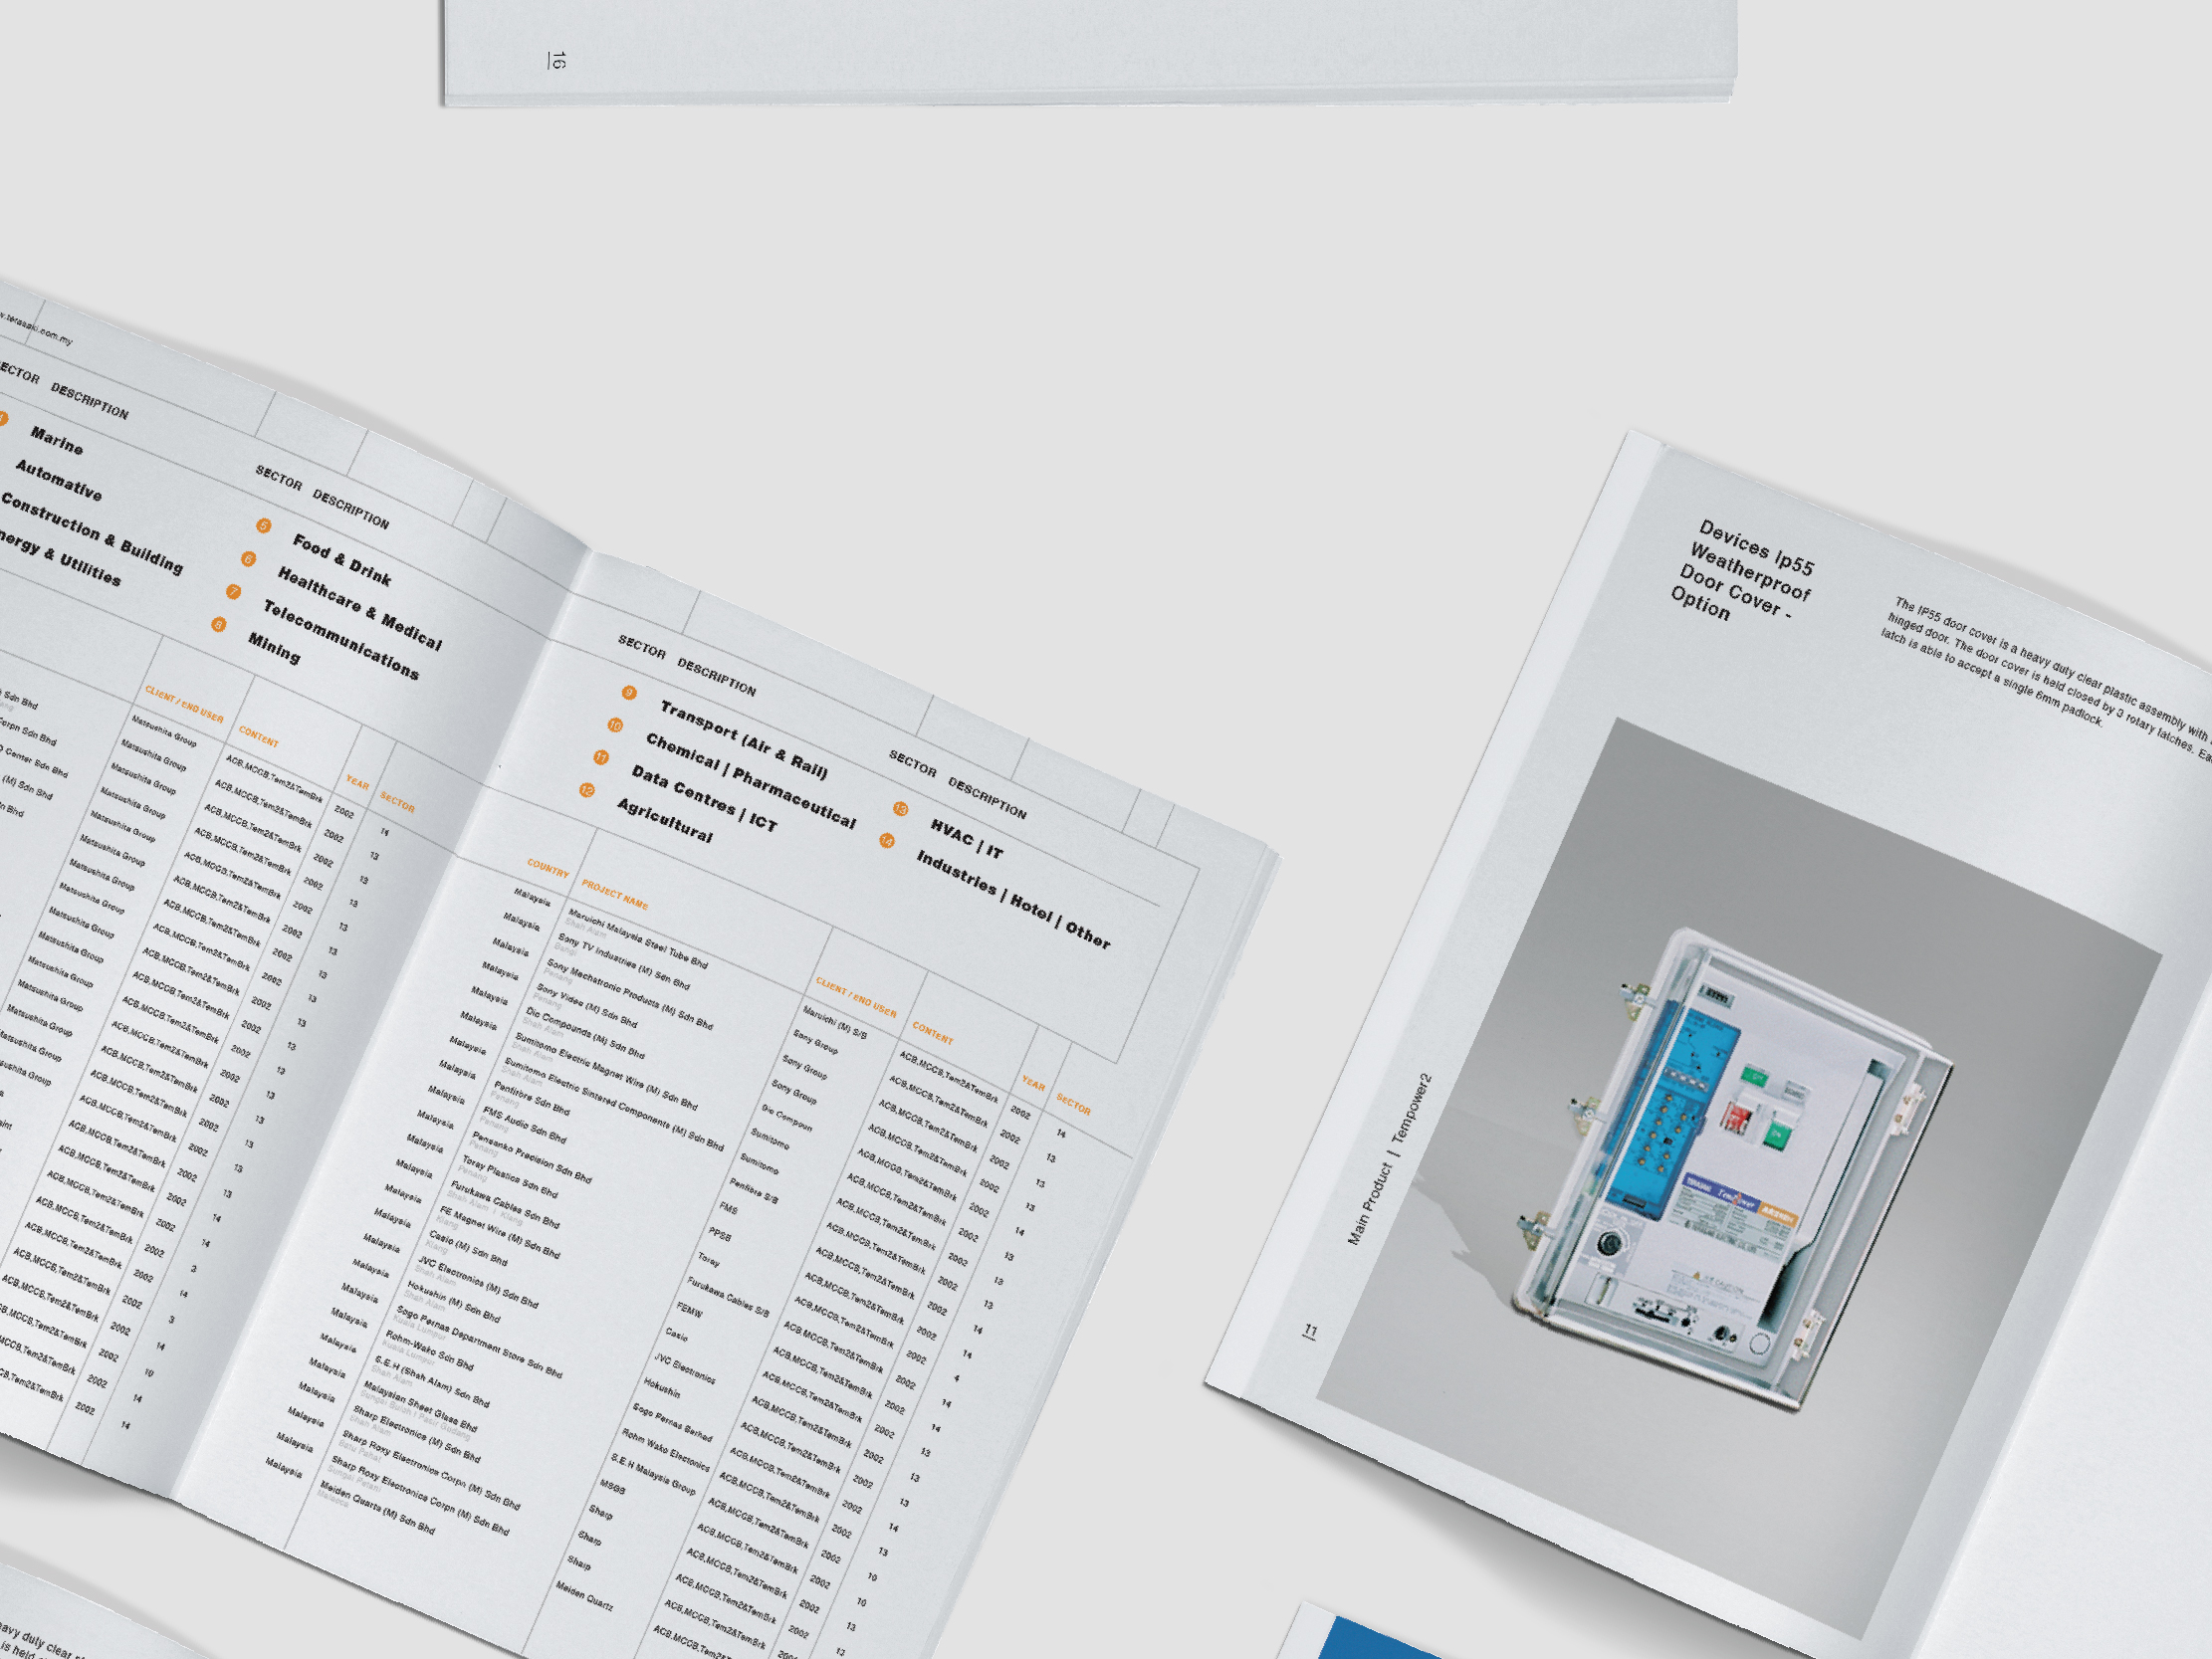 Terasaki Electric company profile inner pages clean layout design with project list and product description